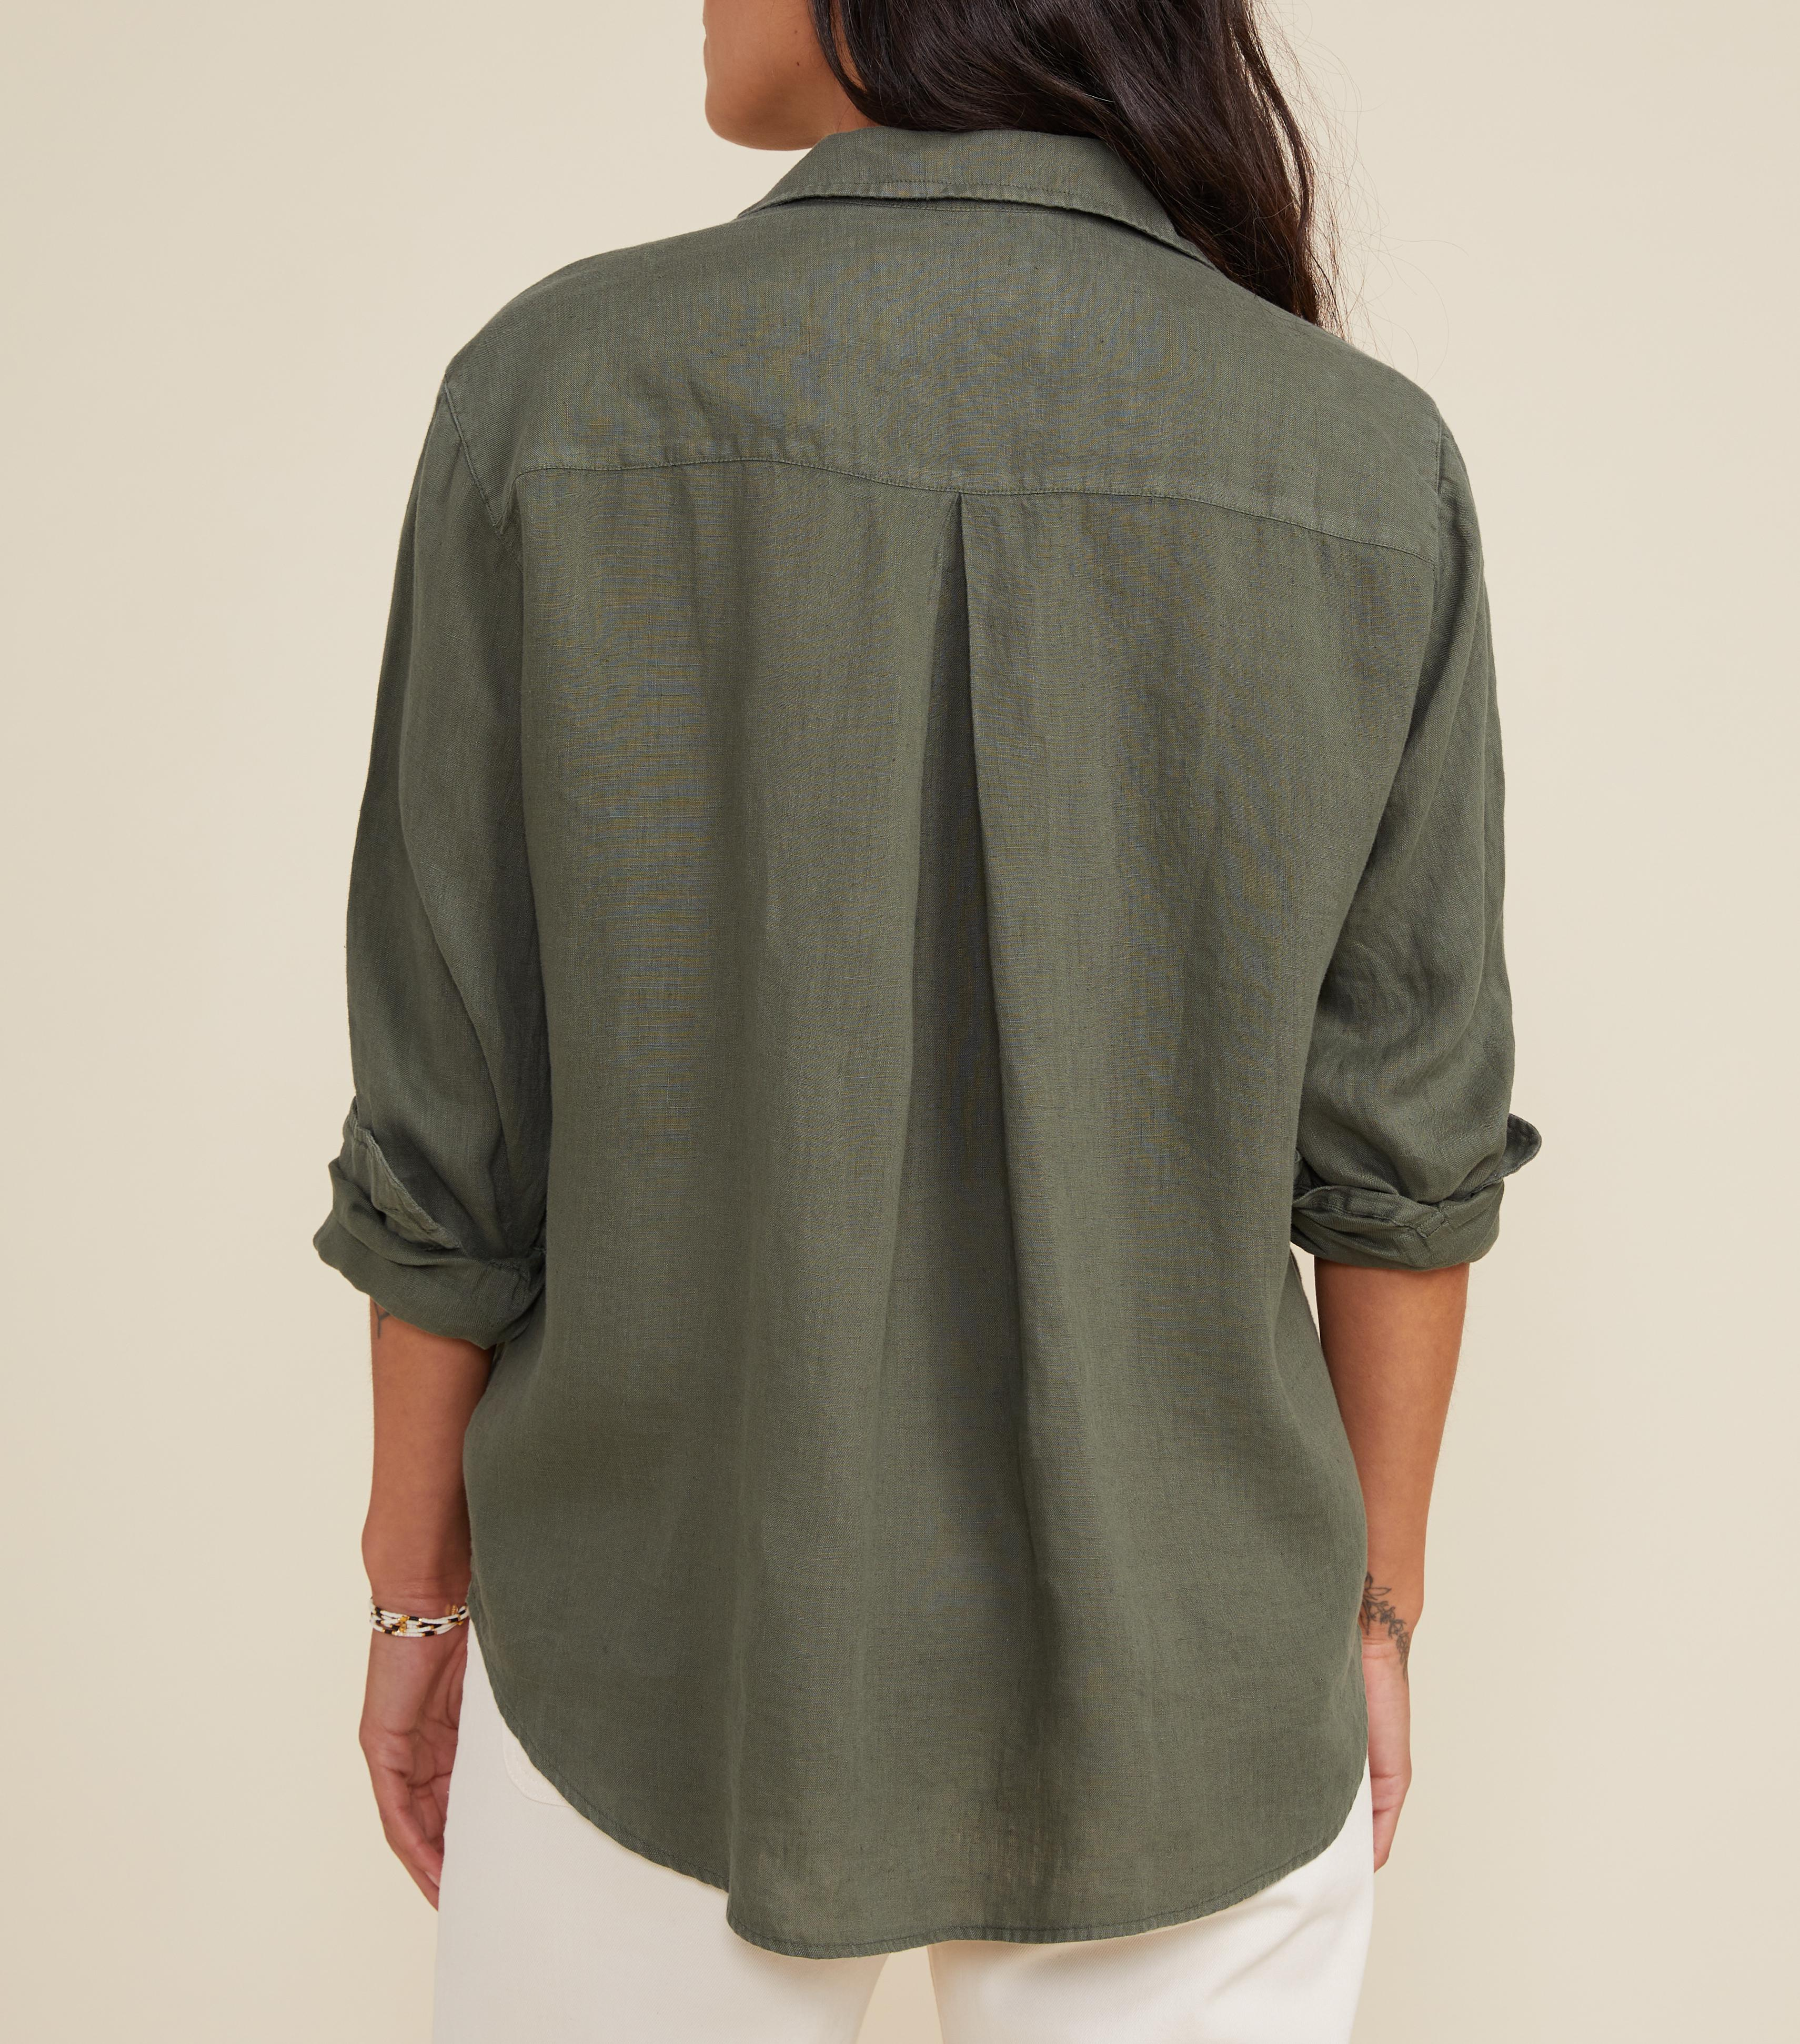 The Hero Button-Up Shirt Army Green, Tumbled Linen 2